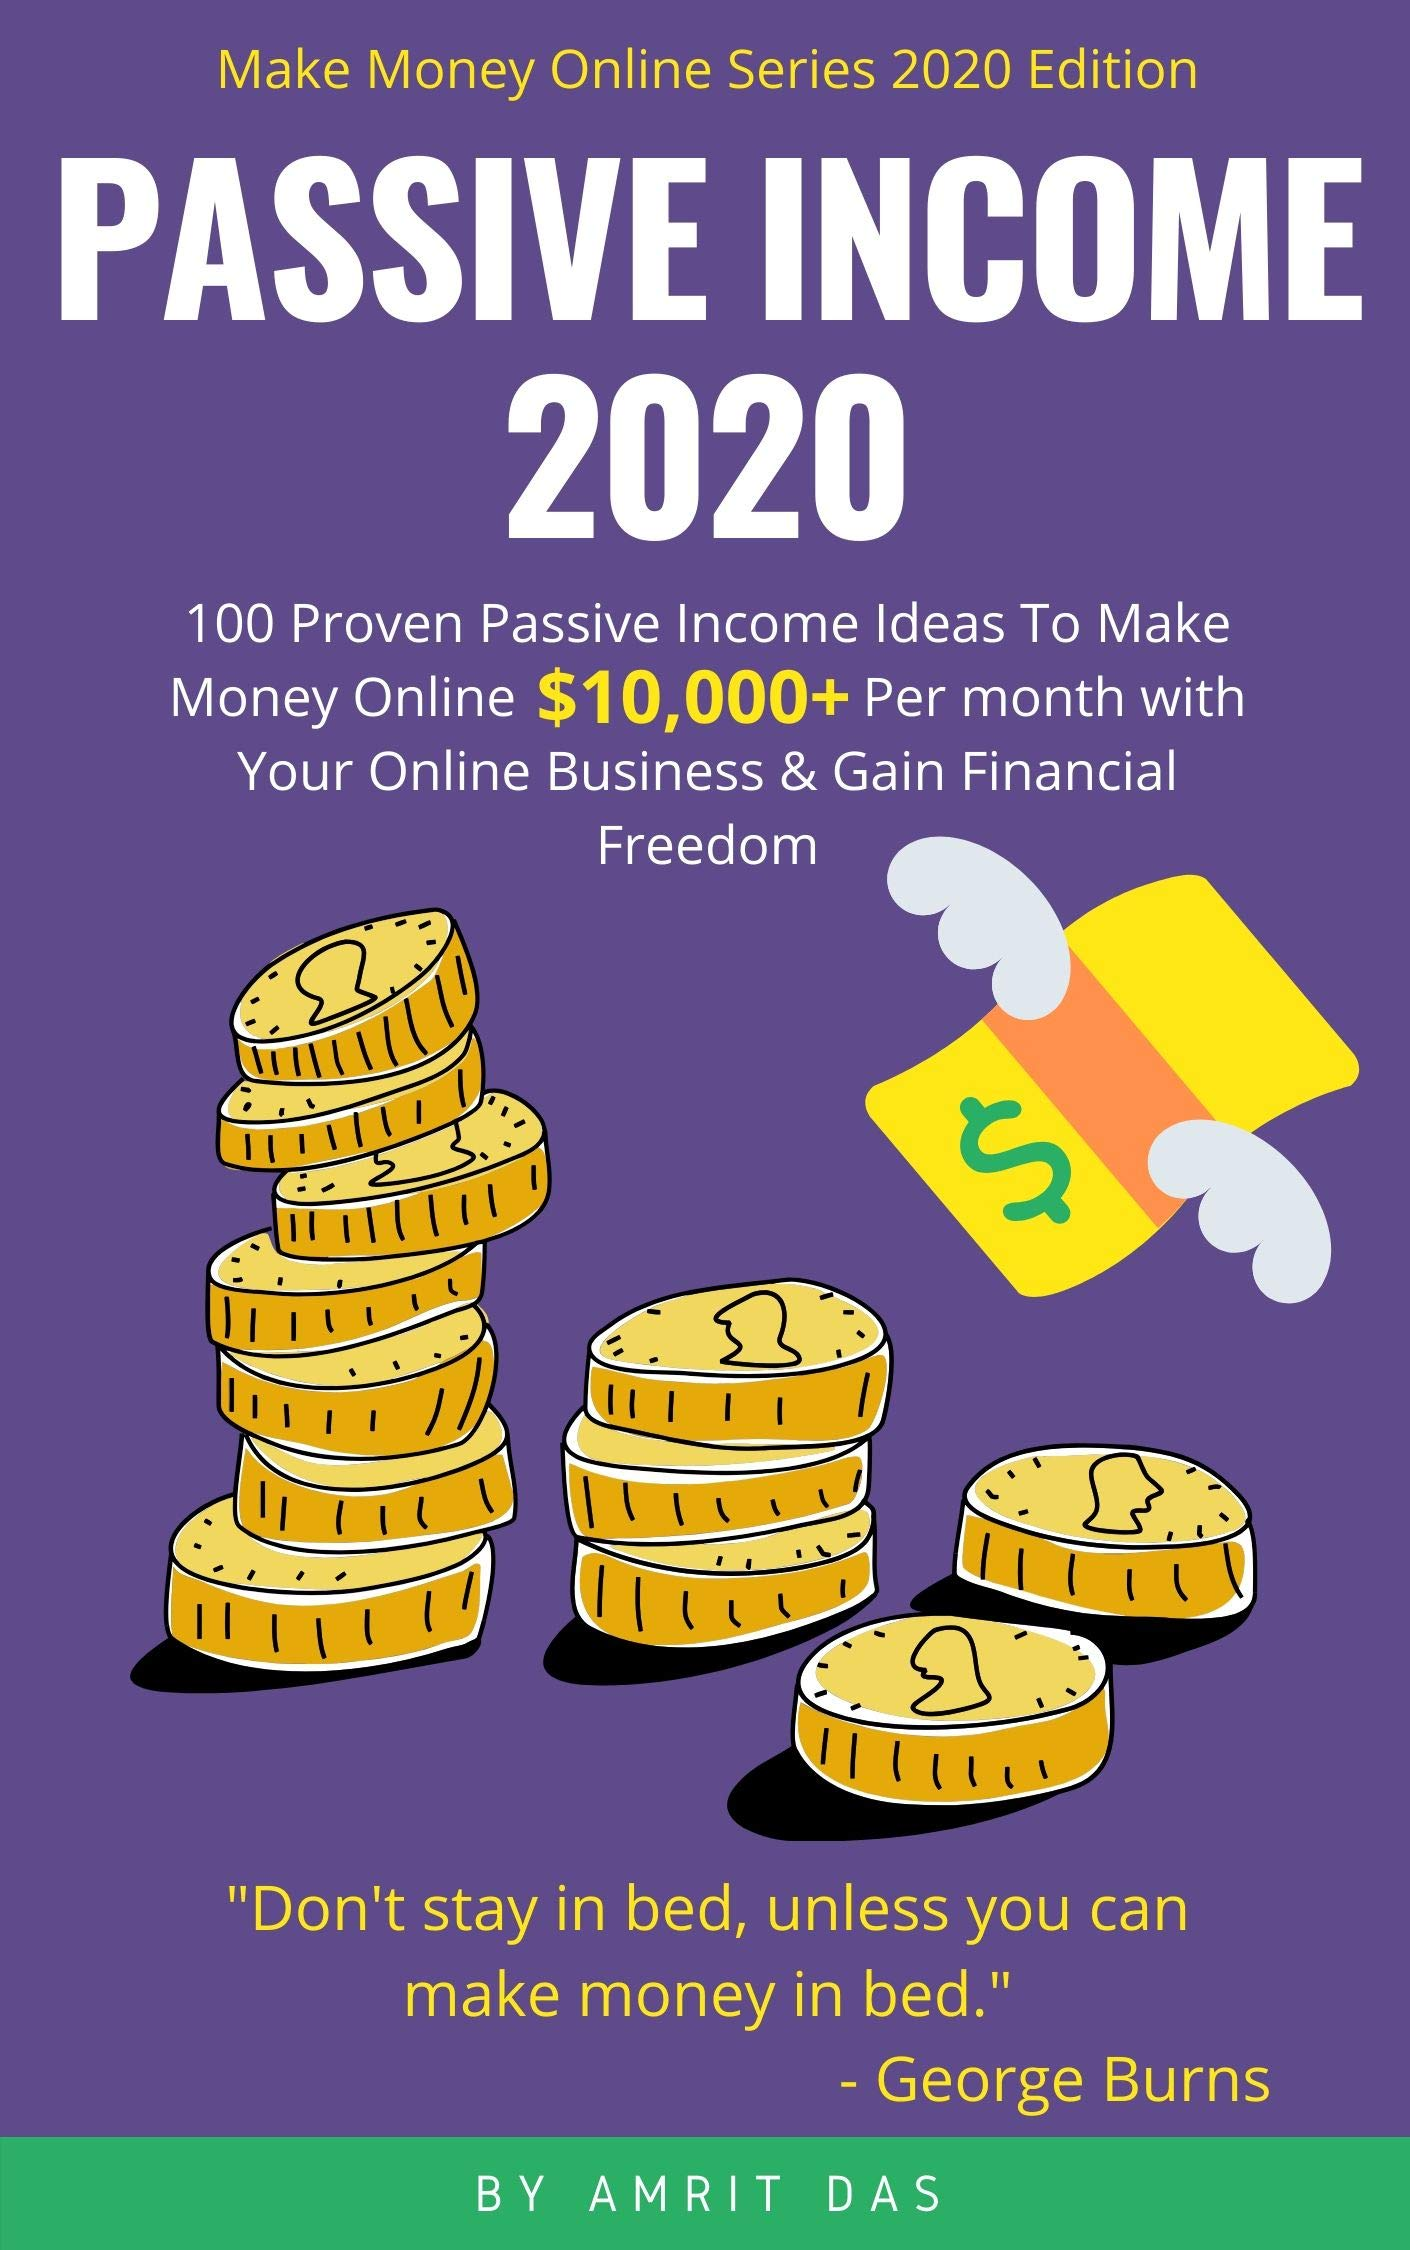 Passive Income 2020  100 Ways To Make $10000+ Per Month With Your Online Business And Gain Financial Freedom  Affiliate Marketing EBay Drop Shipping ... And Lot  Make Money Online   English Edition